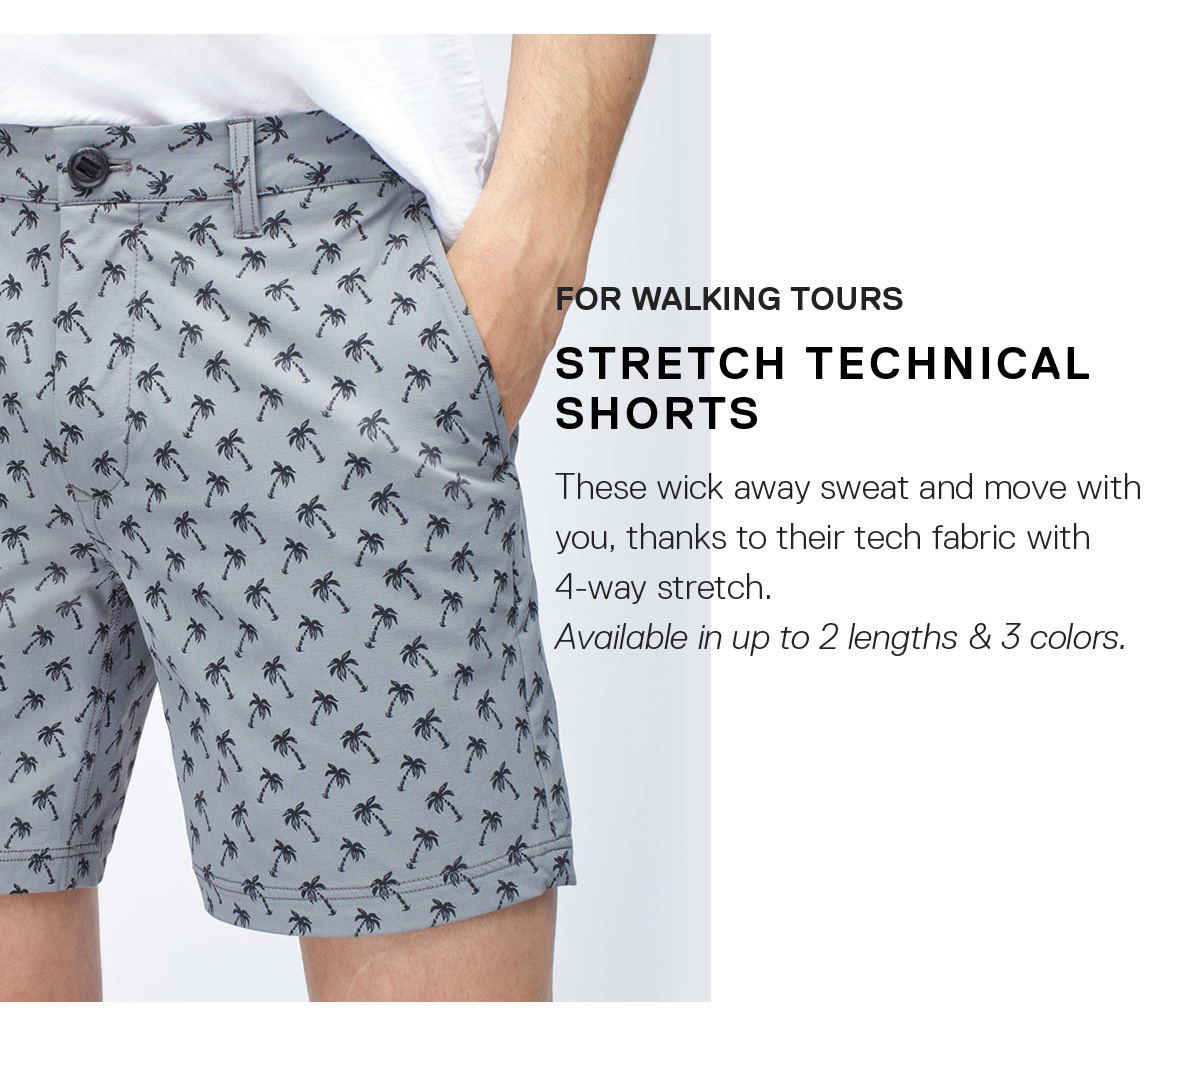 For Walking Tours: Stretch Technical Shorts / These wick away sweat and stretch as you move. Step-count records, consider yourself on notice.